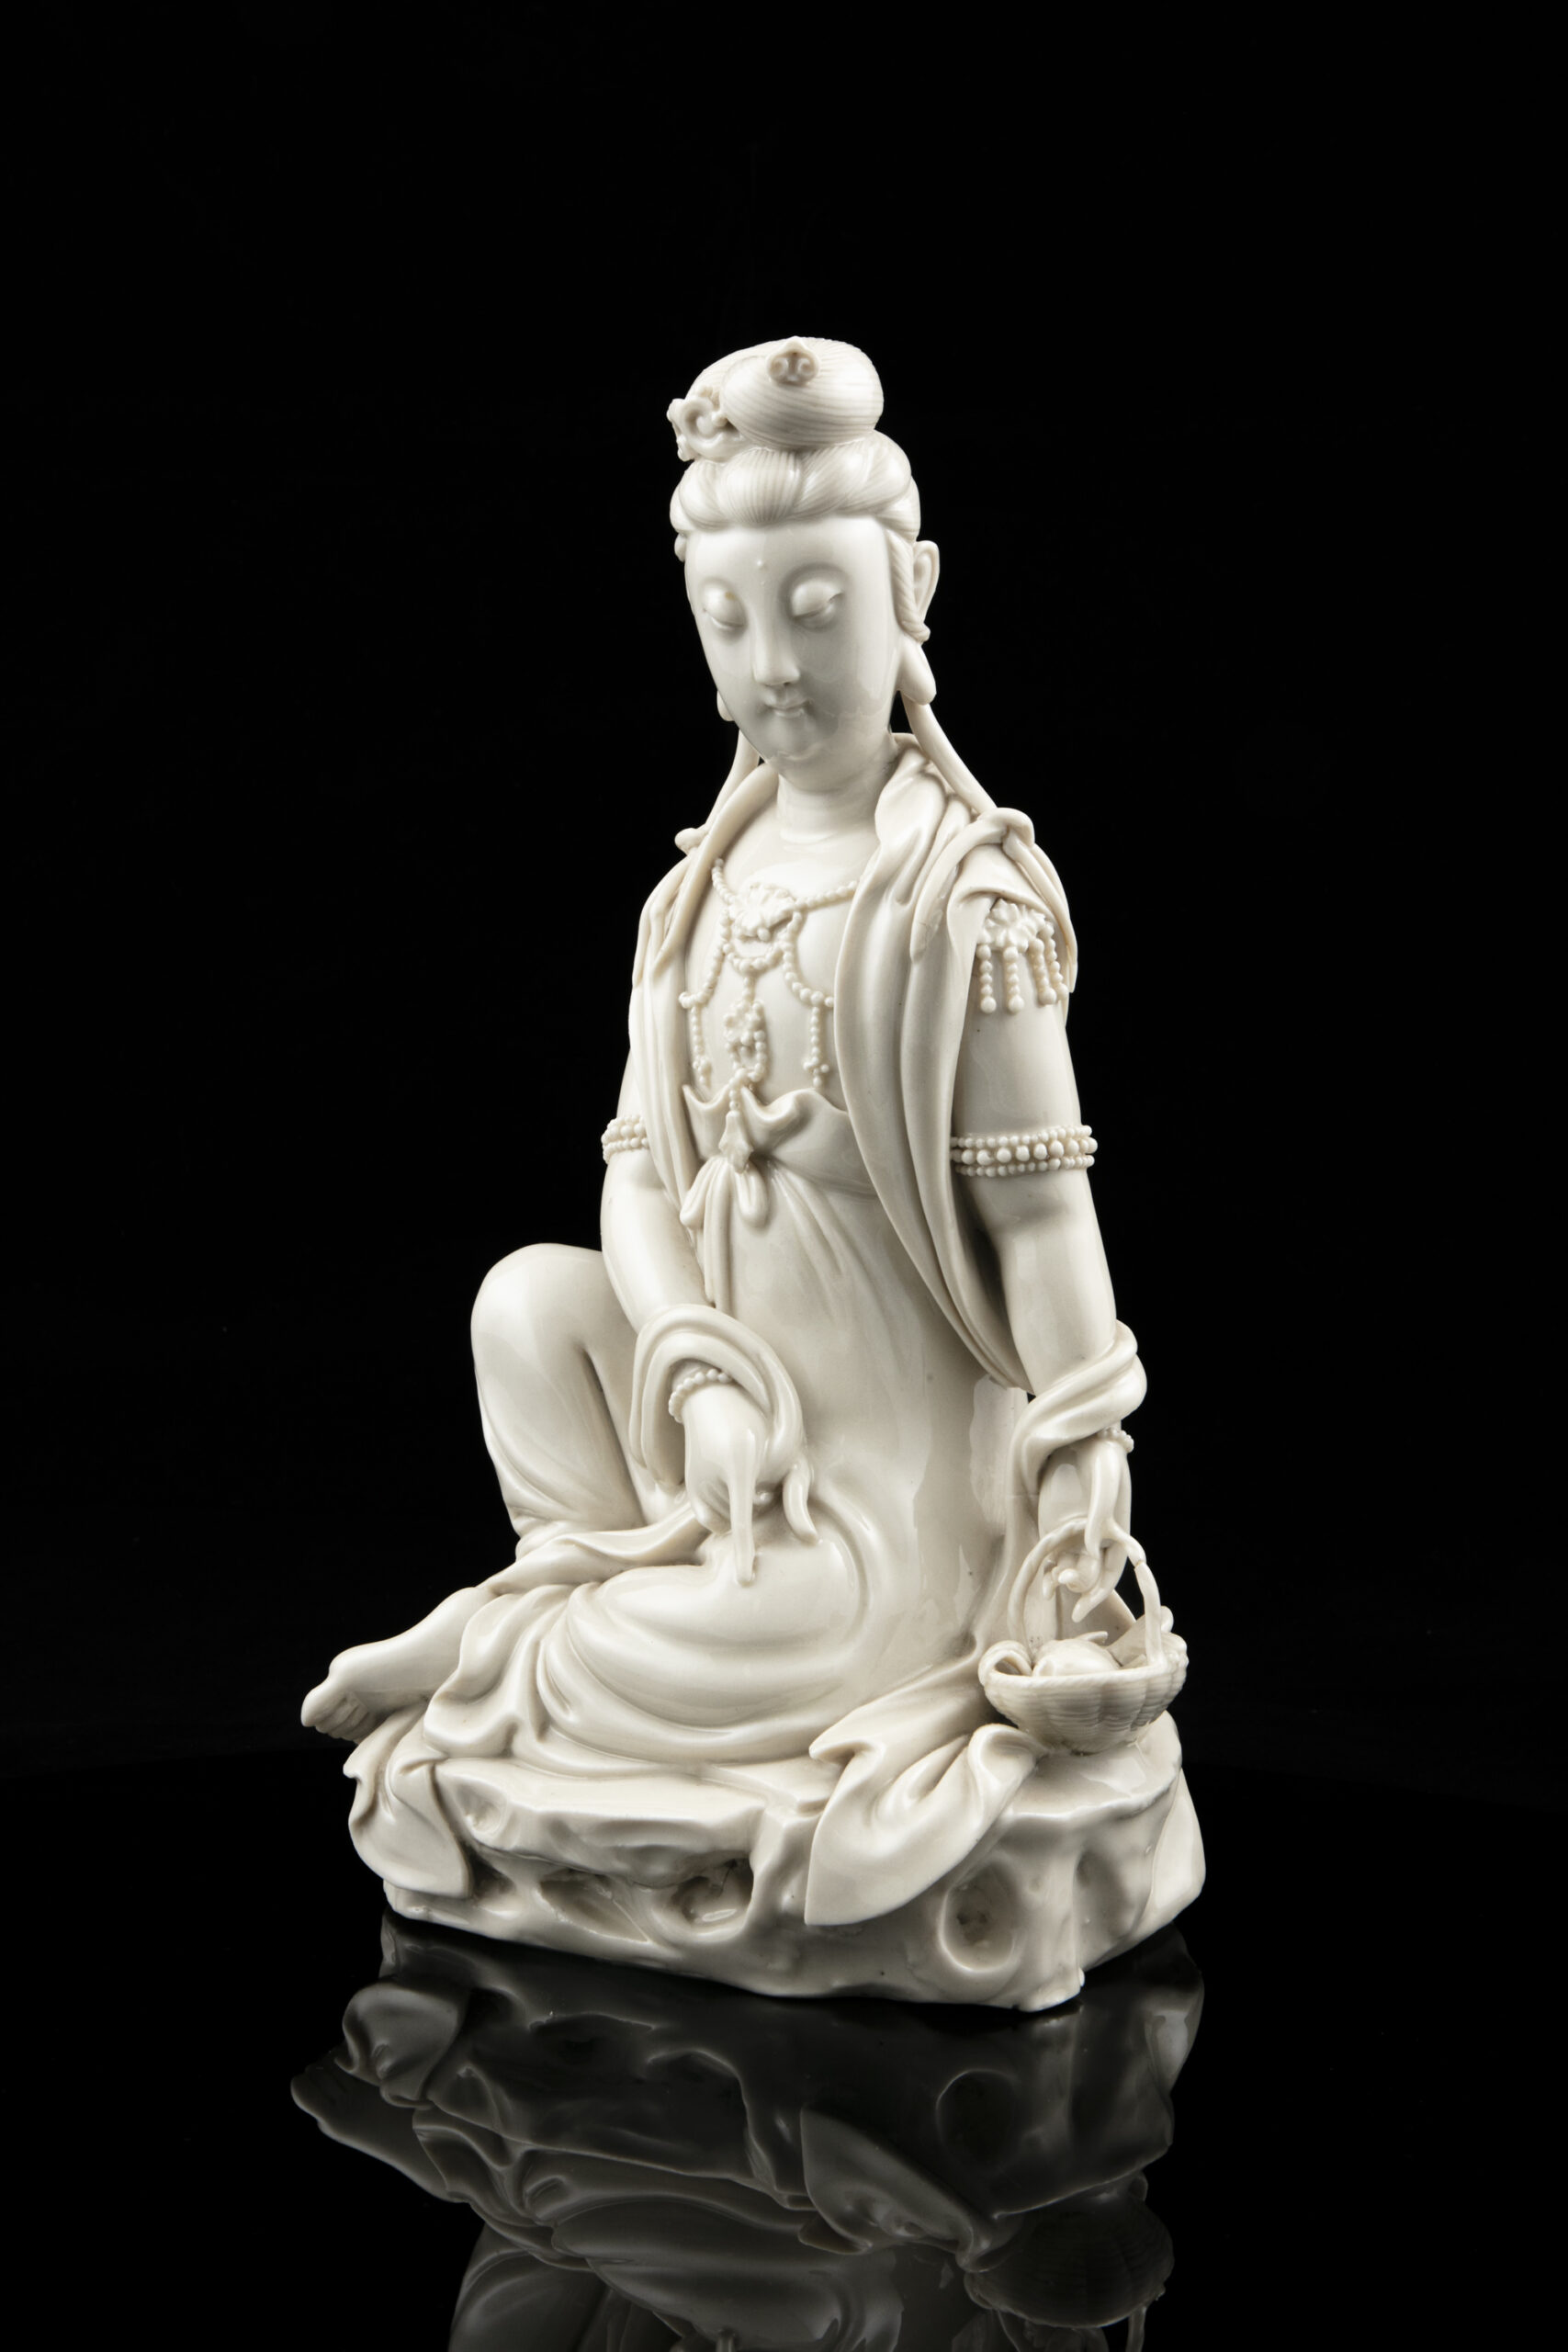 A DEHUA SEATED GUANYIN, CHINA, QING DYNASTY, 18TH TO 19TH CENTURY